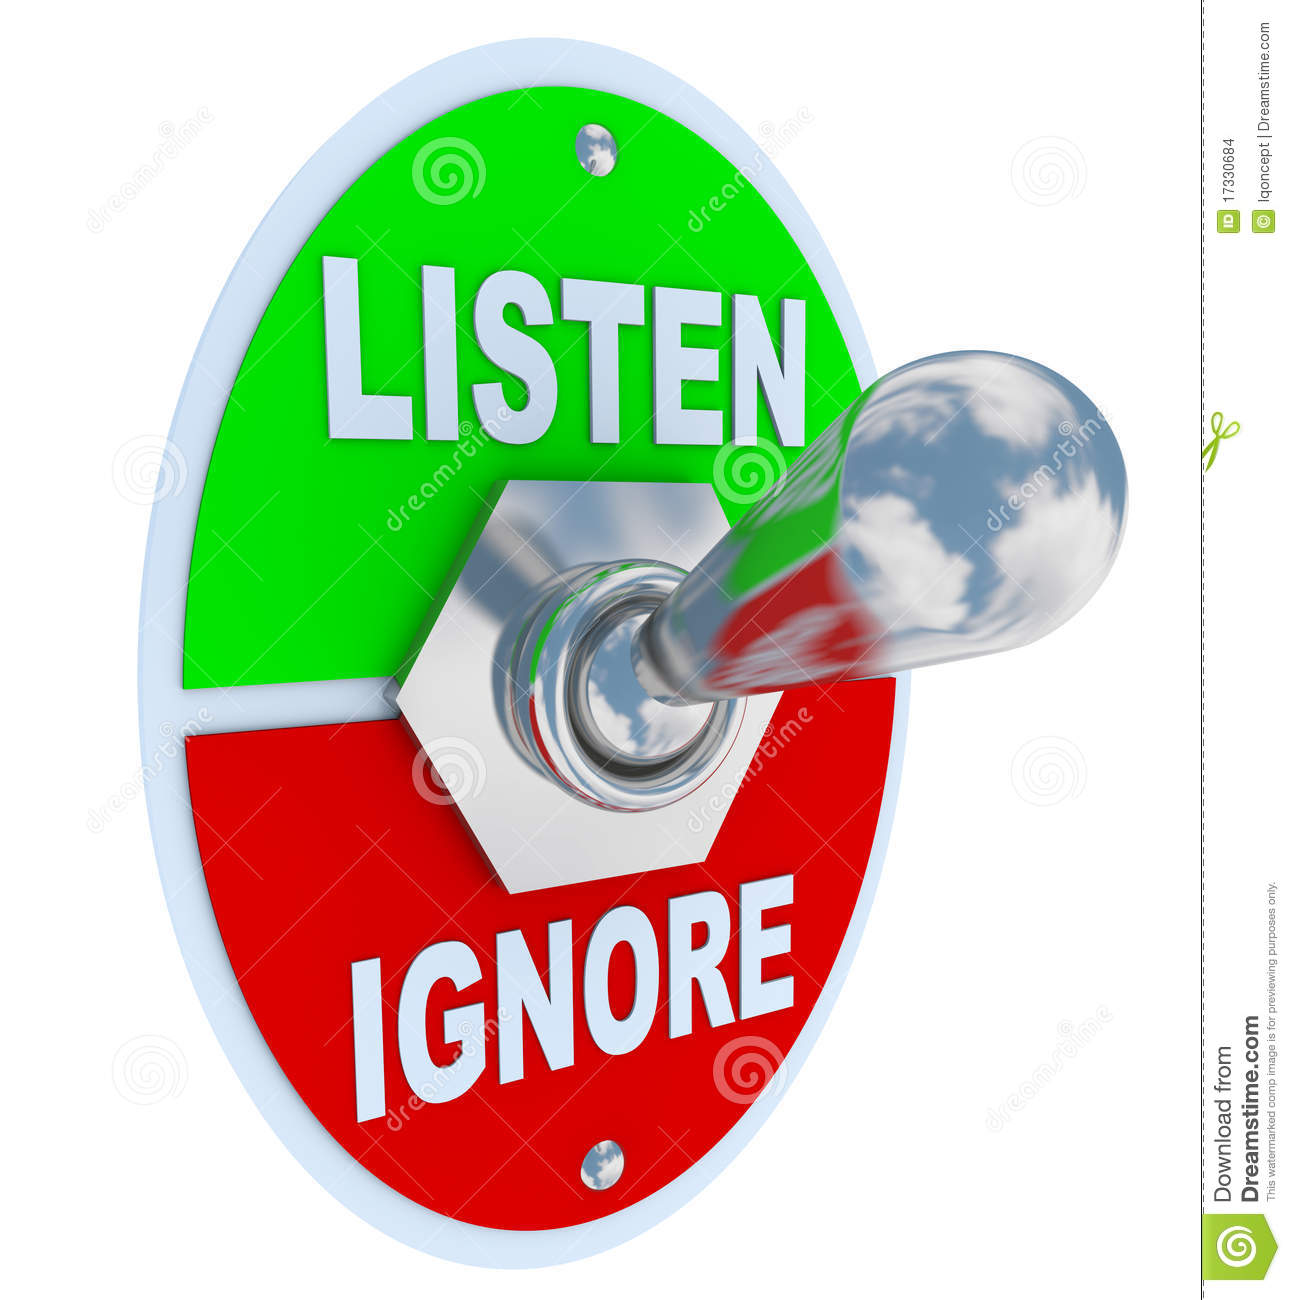 listen vs ignore toggle switch stock images image clip art reading bible clip art reading bible